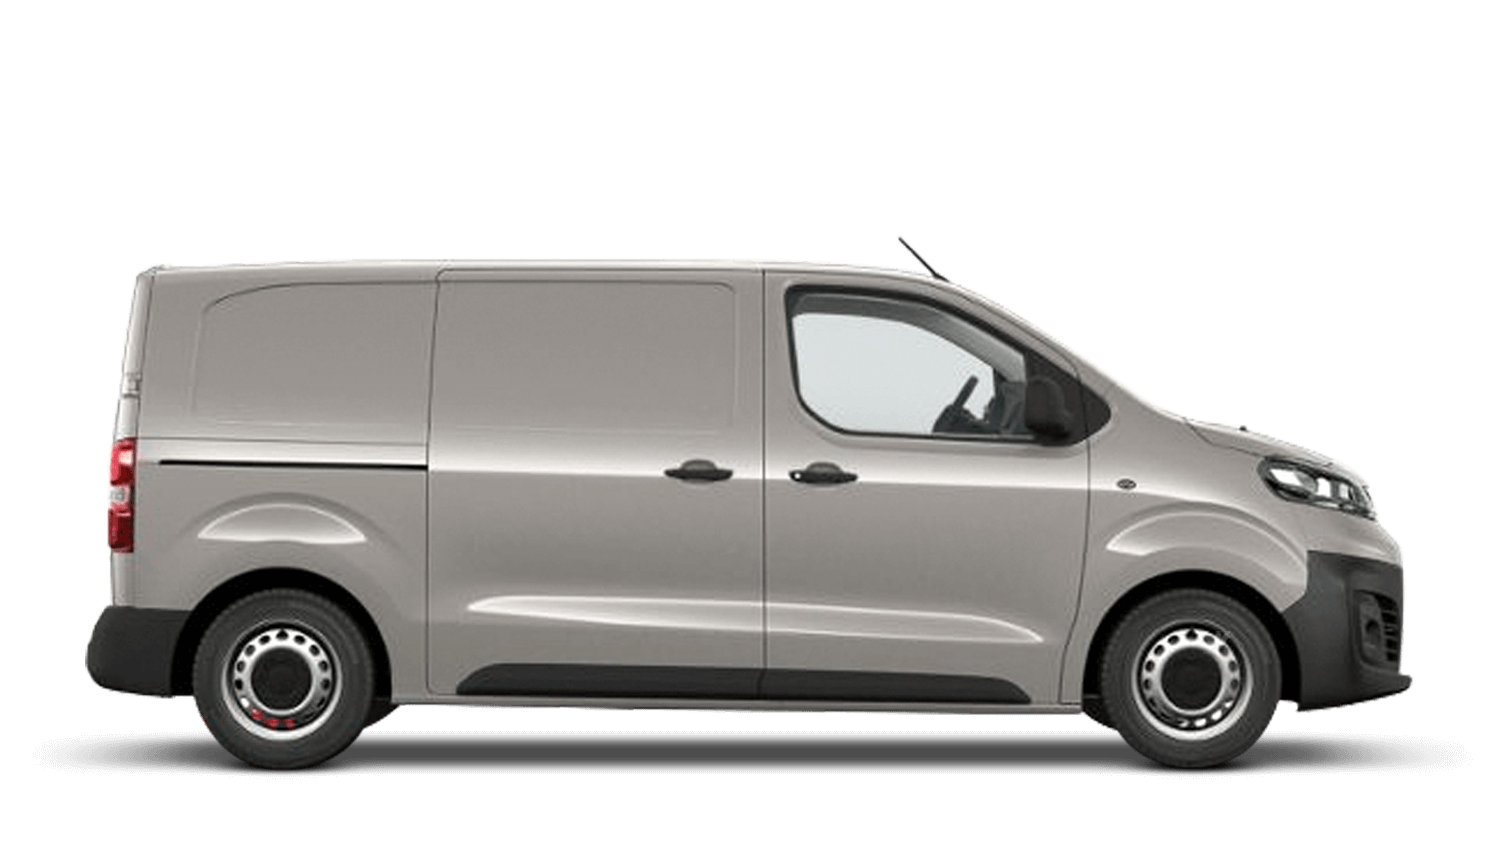 Cool Grey (Metallic) New Vauxhall Vivaro